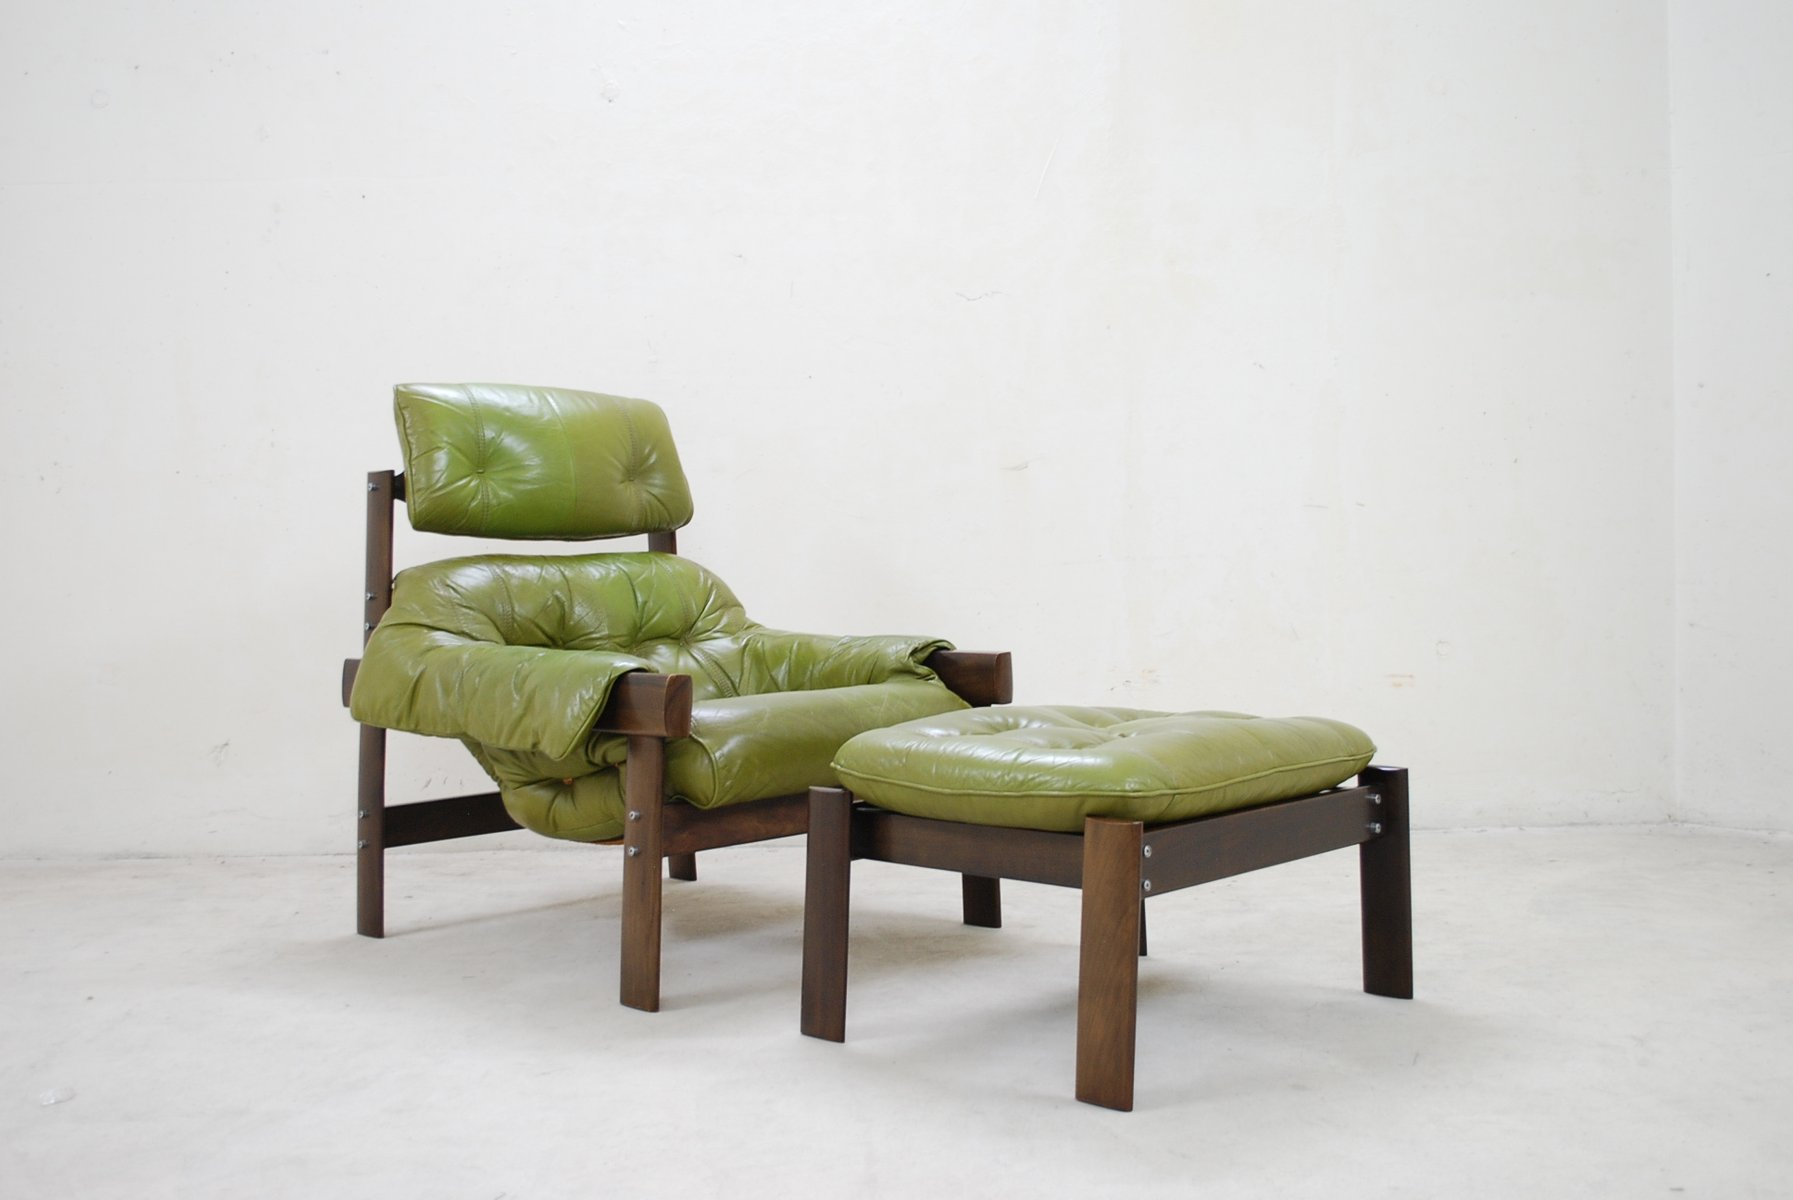 percival lafer - model mp  lime green leather lounge chair  ottoman from percival lafer